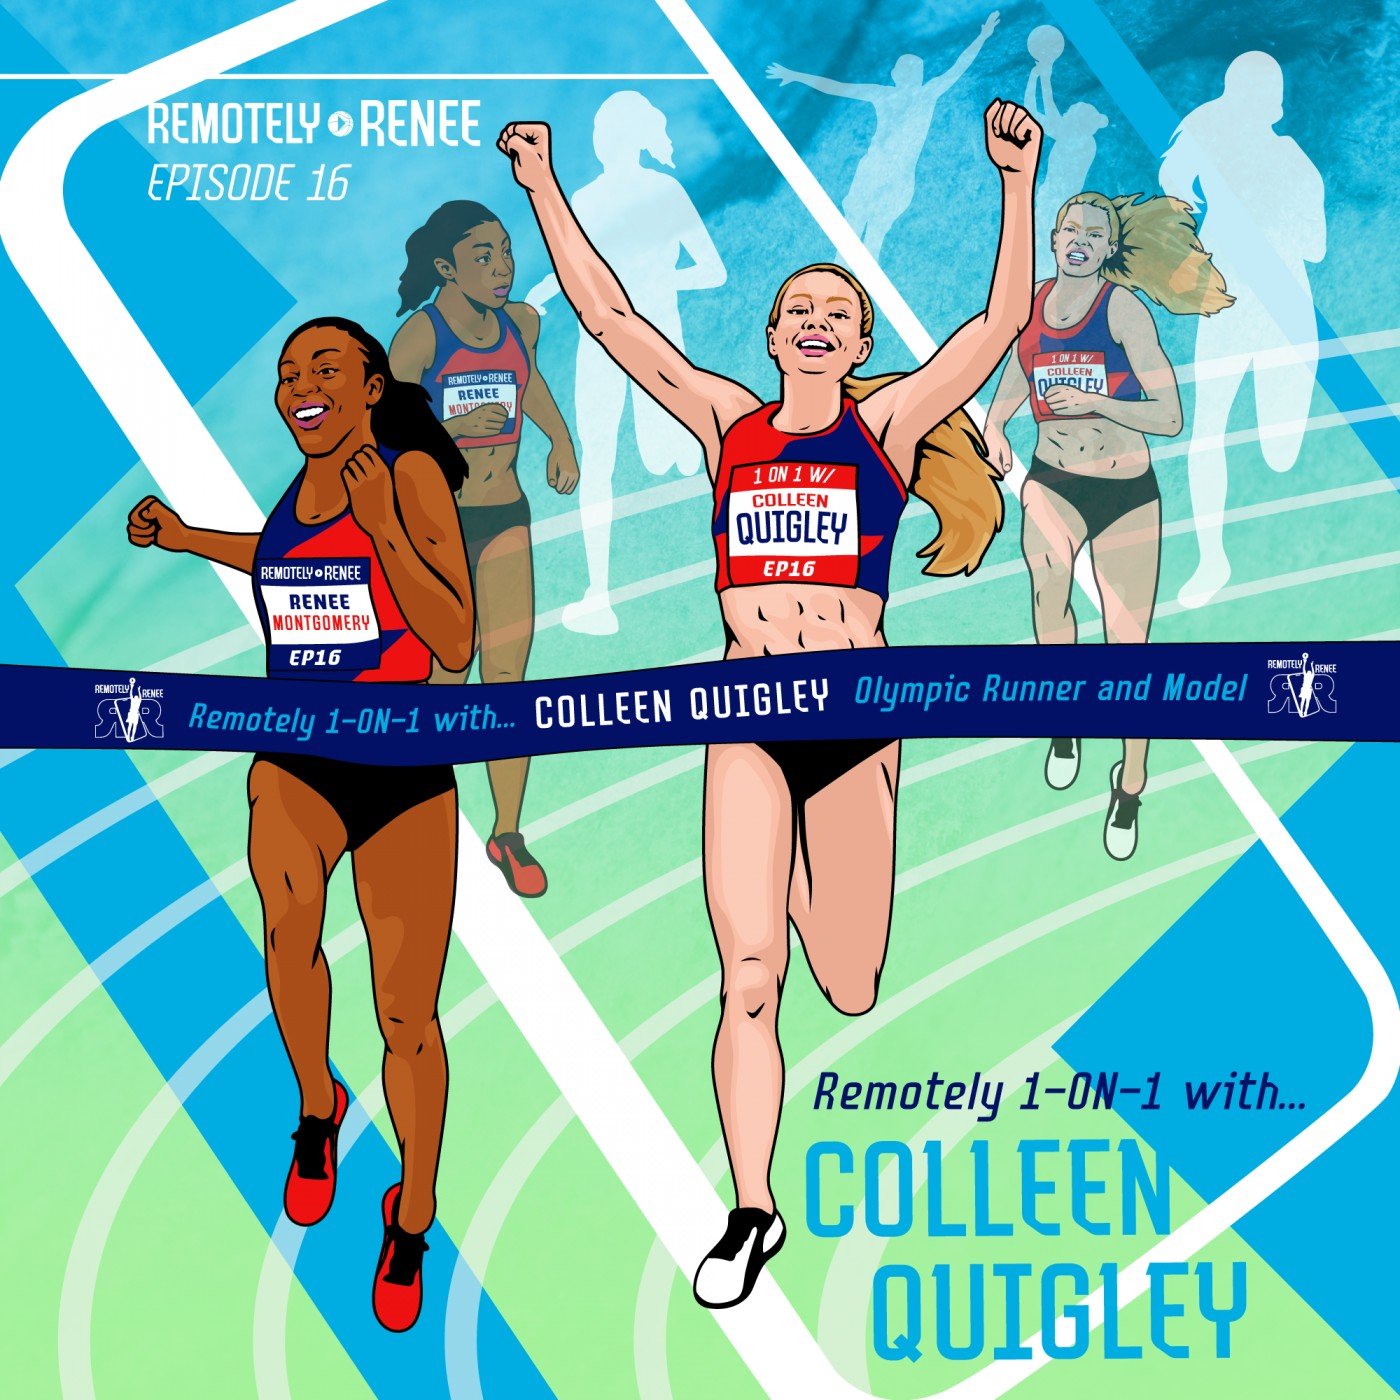 Ep 16.5 - Colleen Quigley - Olympic Runner and Model IRL